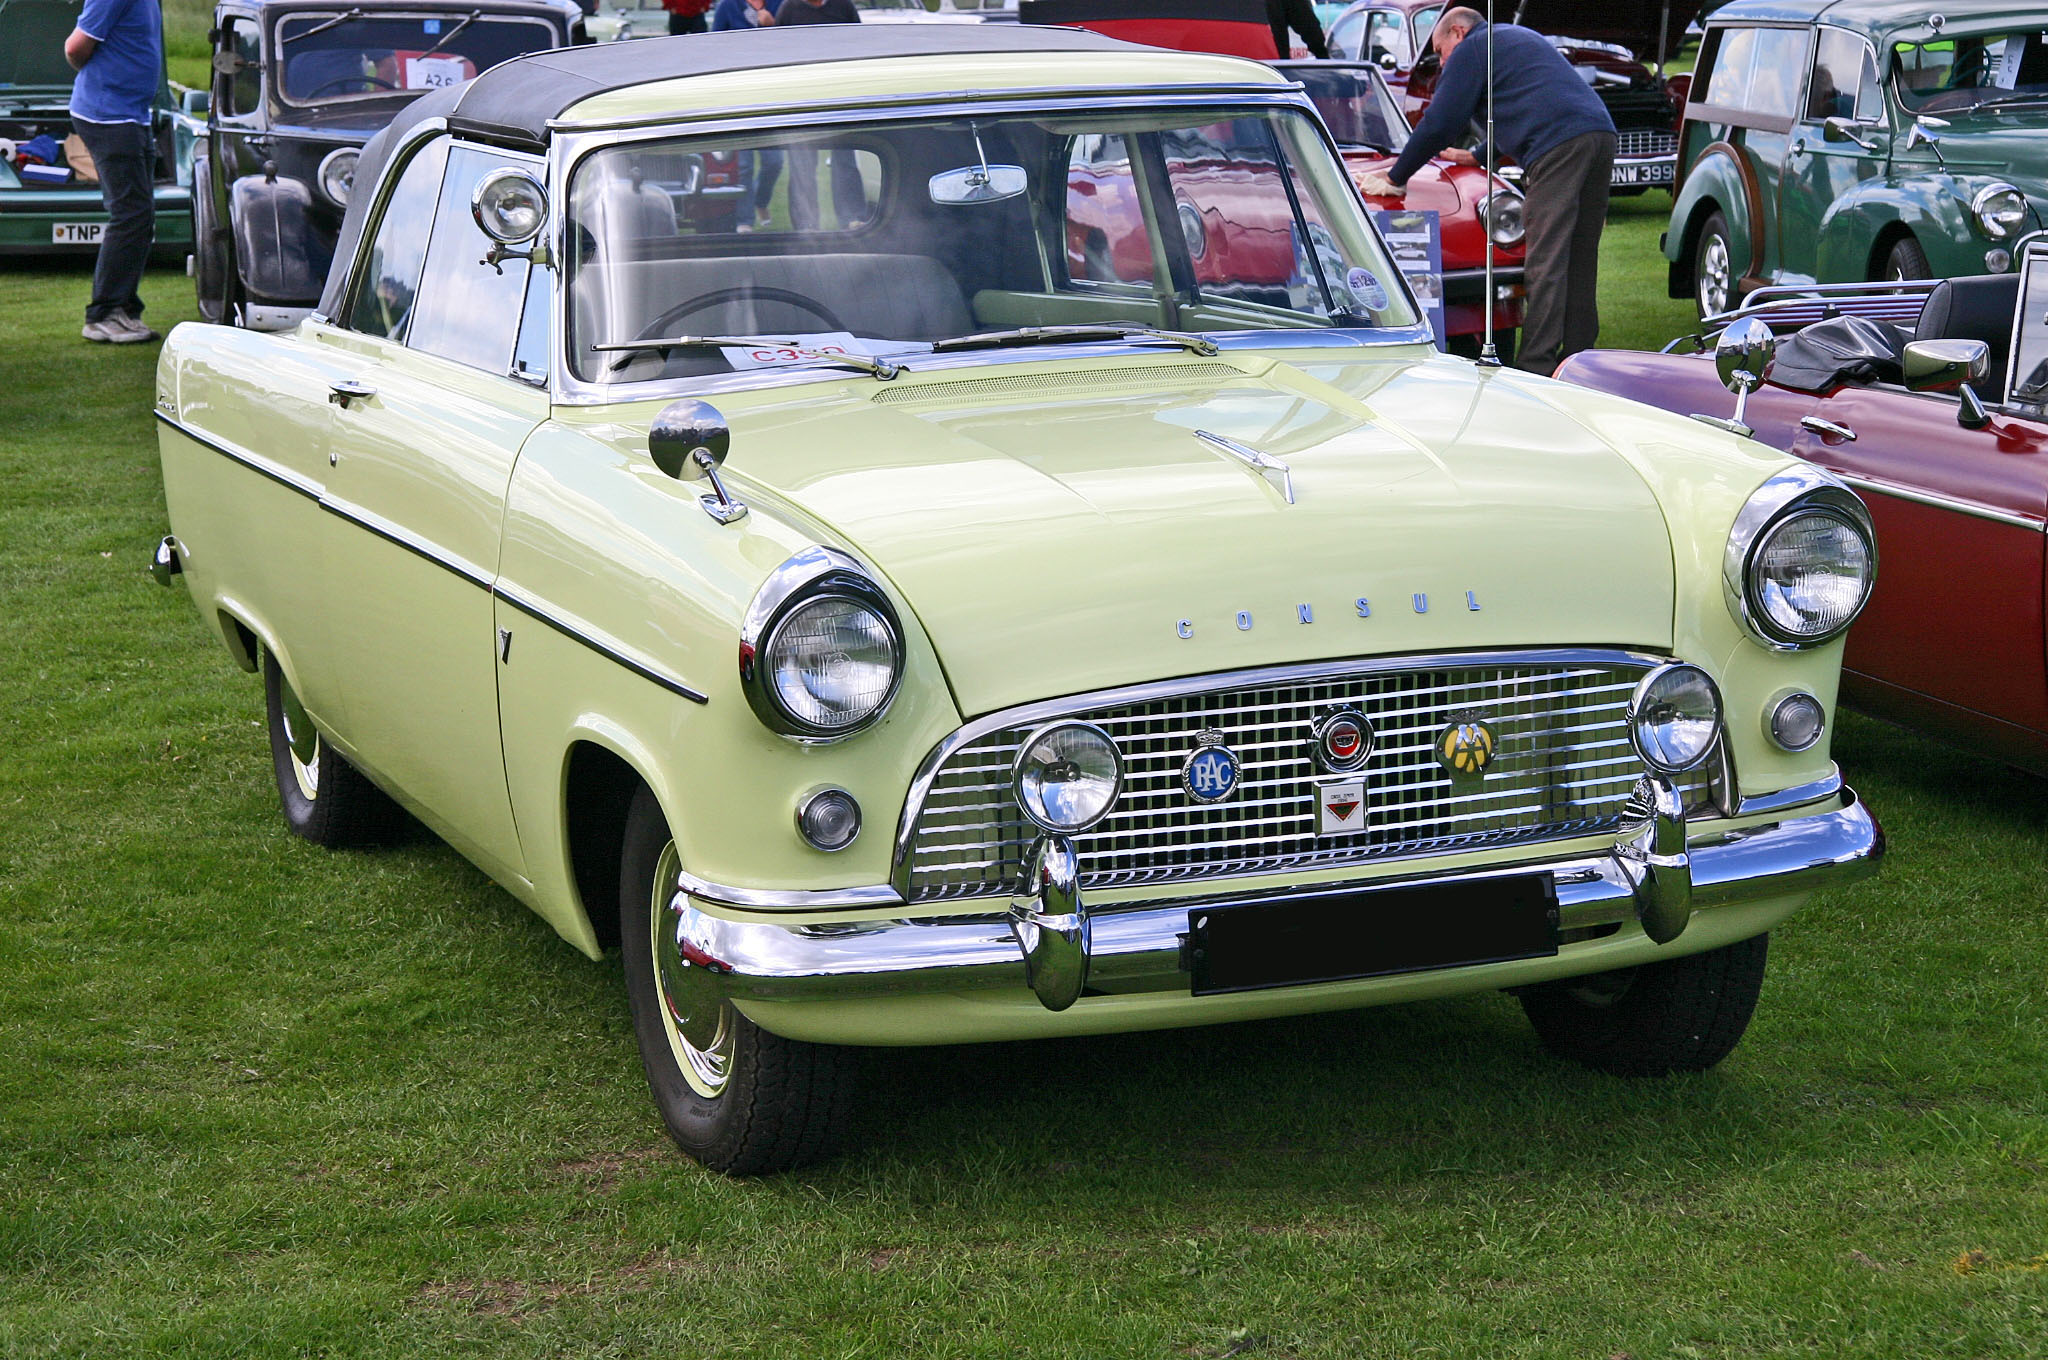 file ford consul 204e convertible. Black Bedroom Furniture Sets. Home Design Ideas